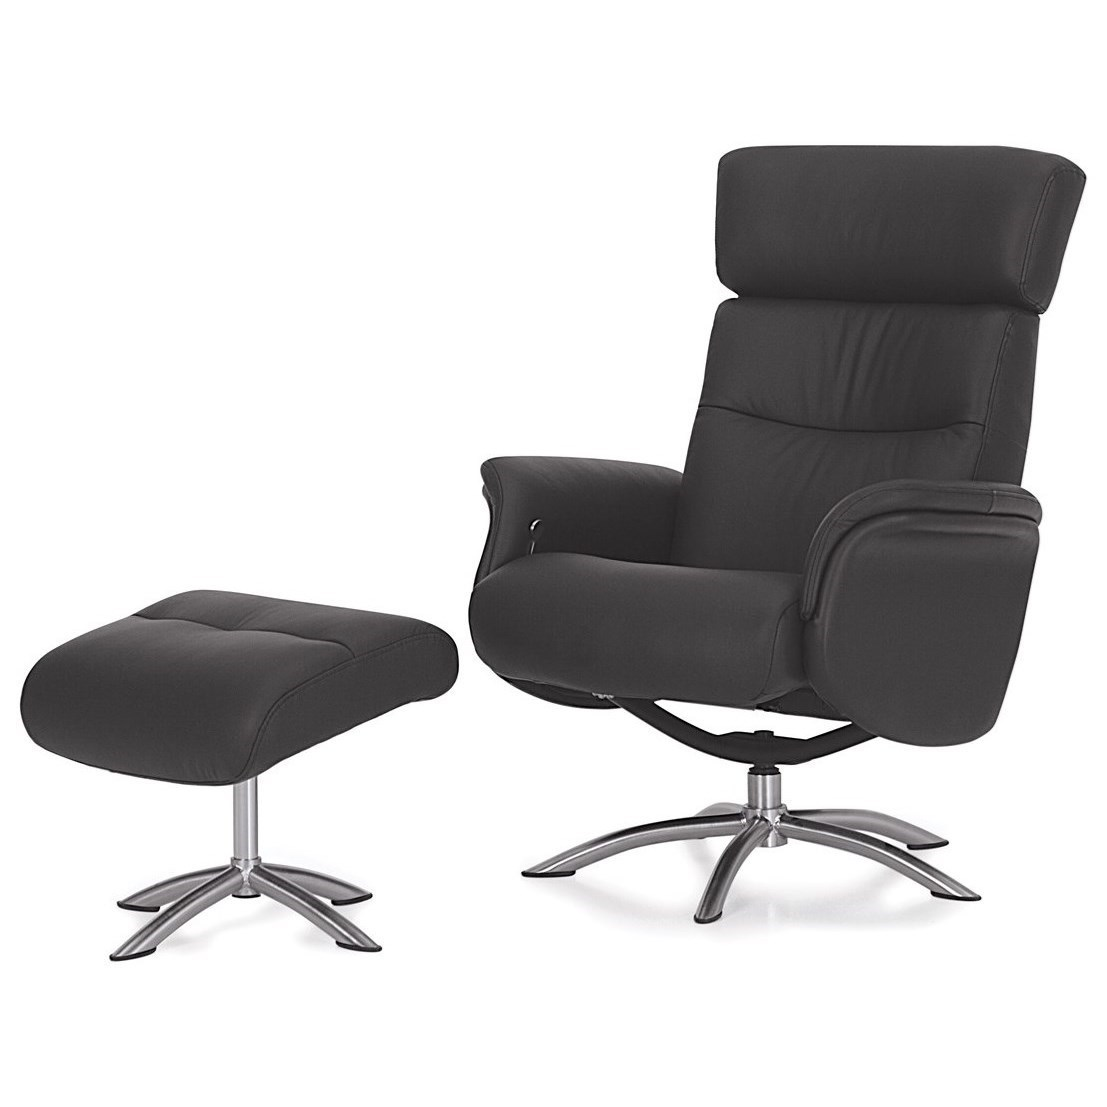 Charmant Palliser Quantum Contemporary Reclining Chair With Swivel Base And Ottoman